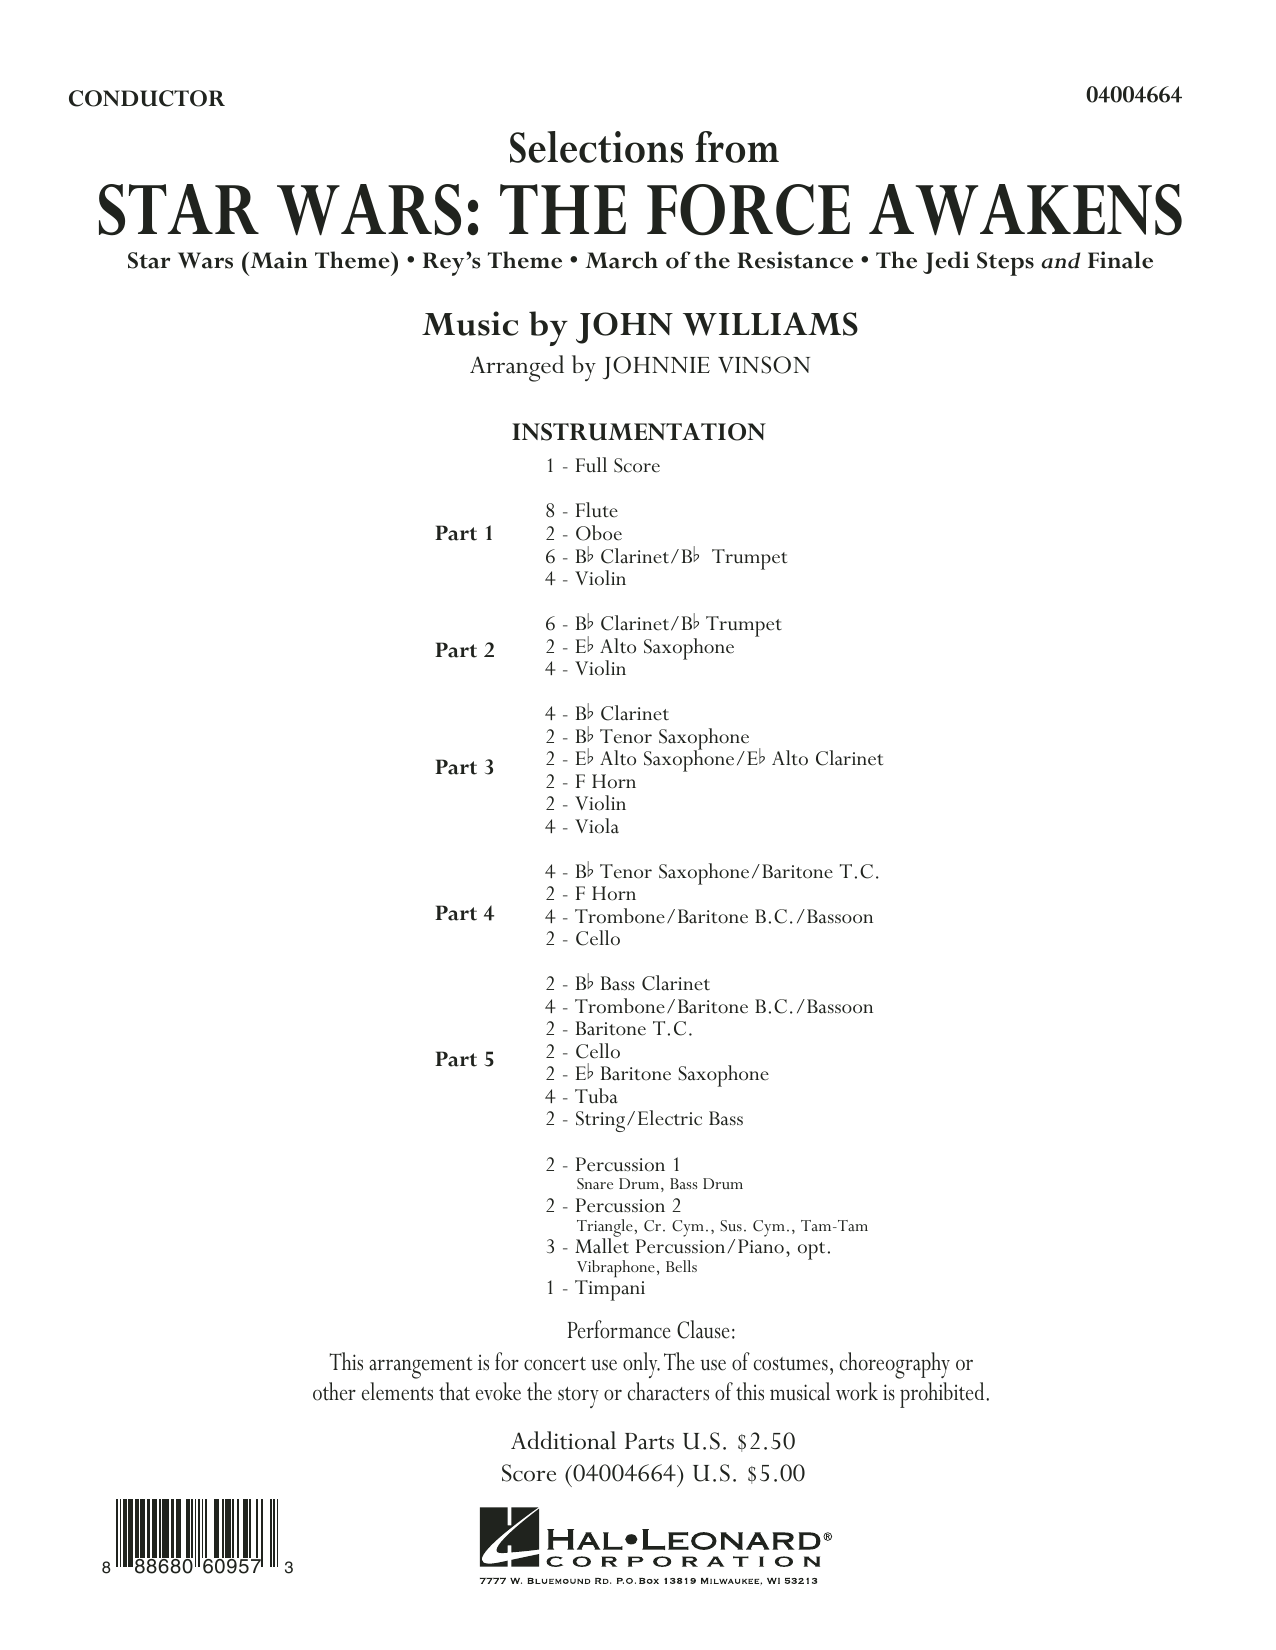 John Williams - Selections from Star Wars: The Force Awakens - Conductor Score (Full Score)